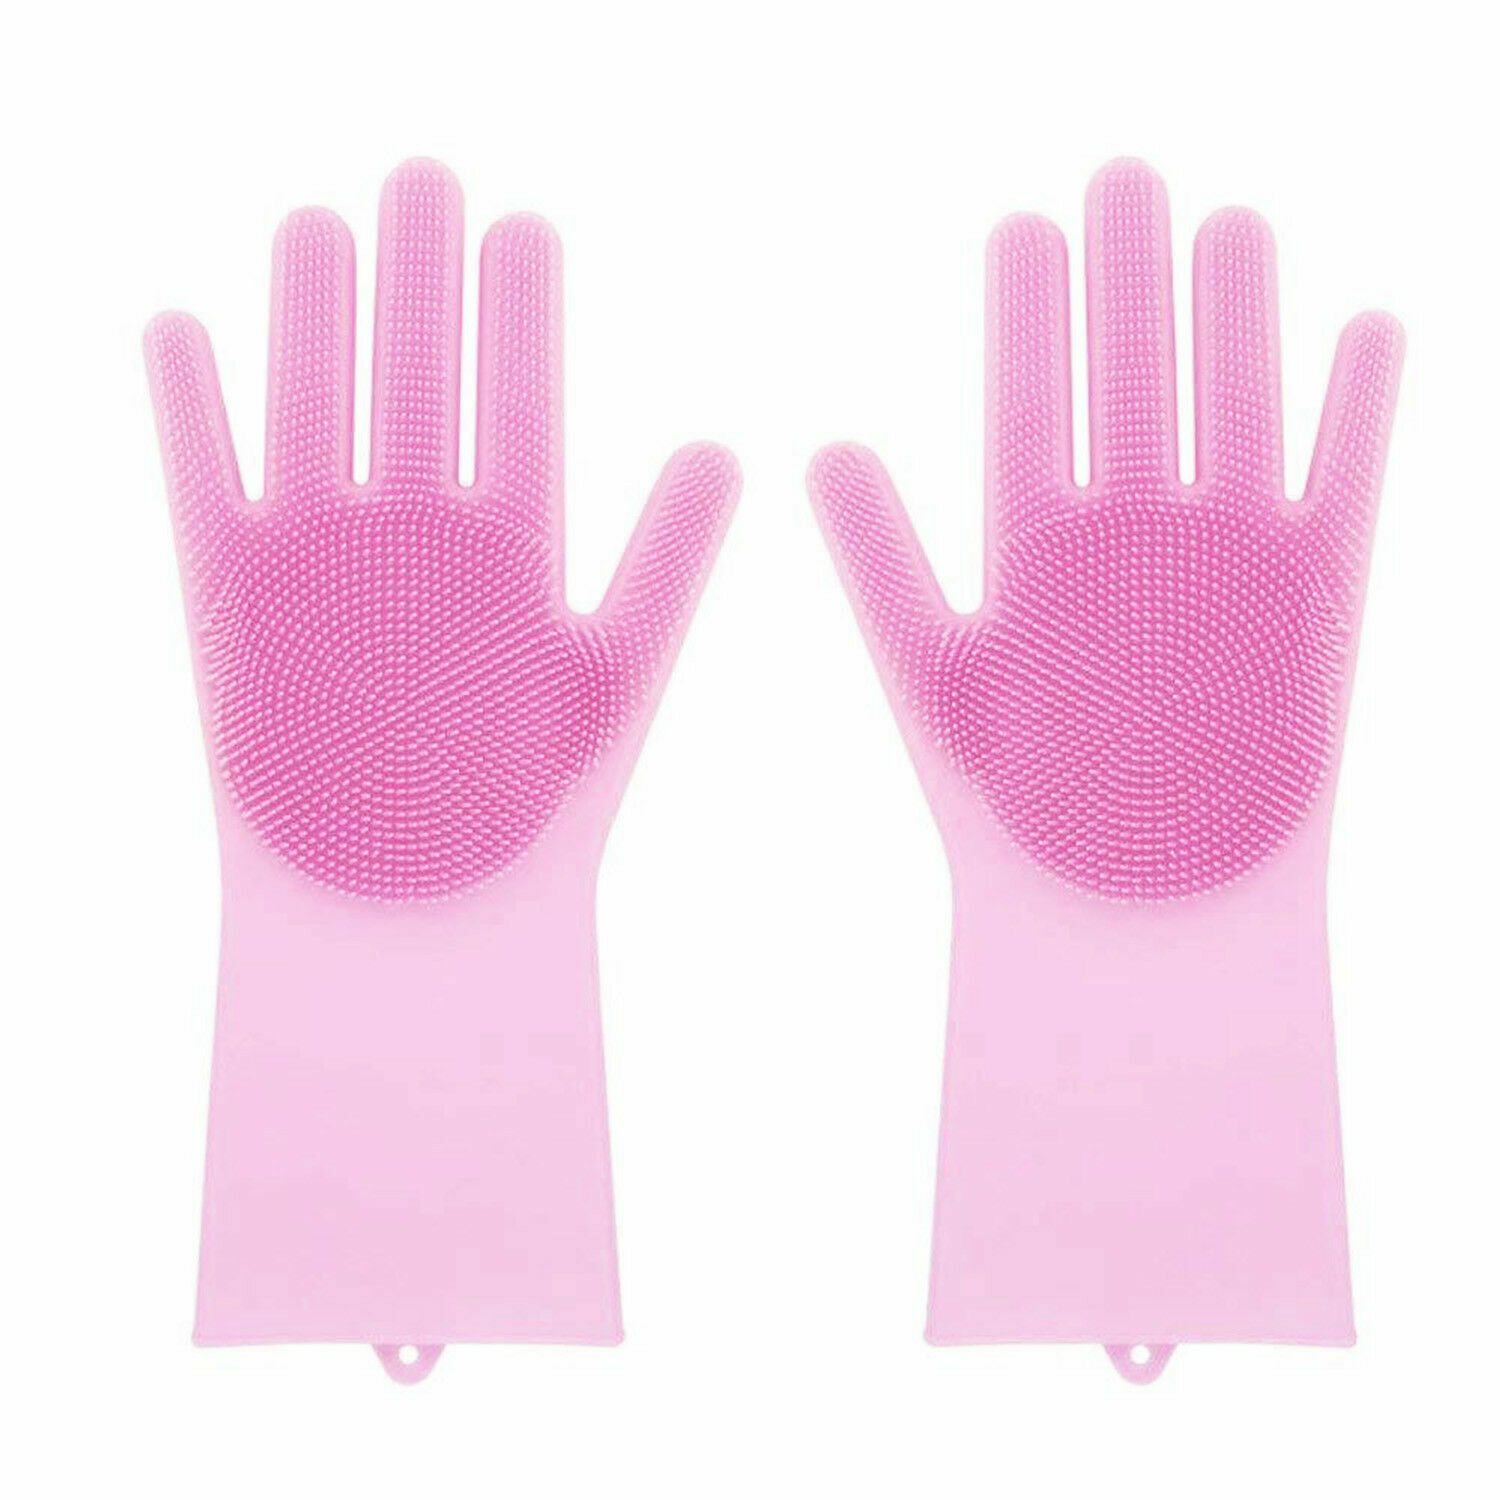 Magic Gloves Dish Washing Silicone Rubber Scrubber Cleaning Pink Color 2 in 1 Cleaning Products